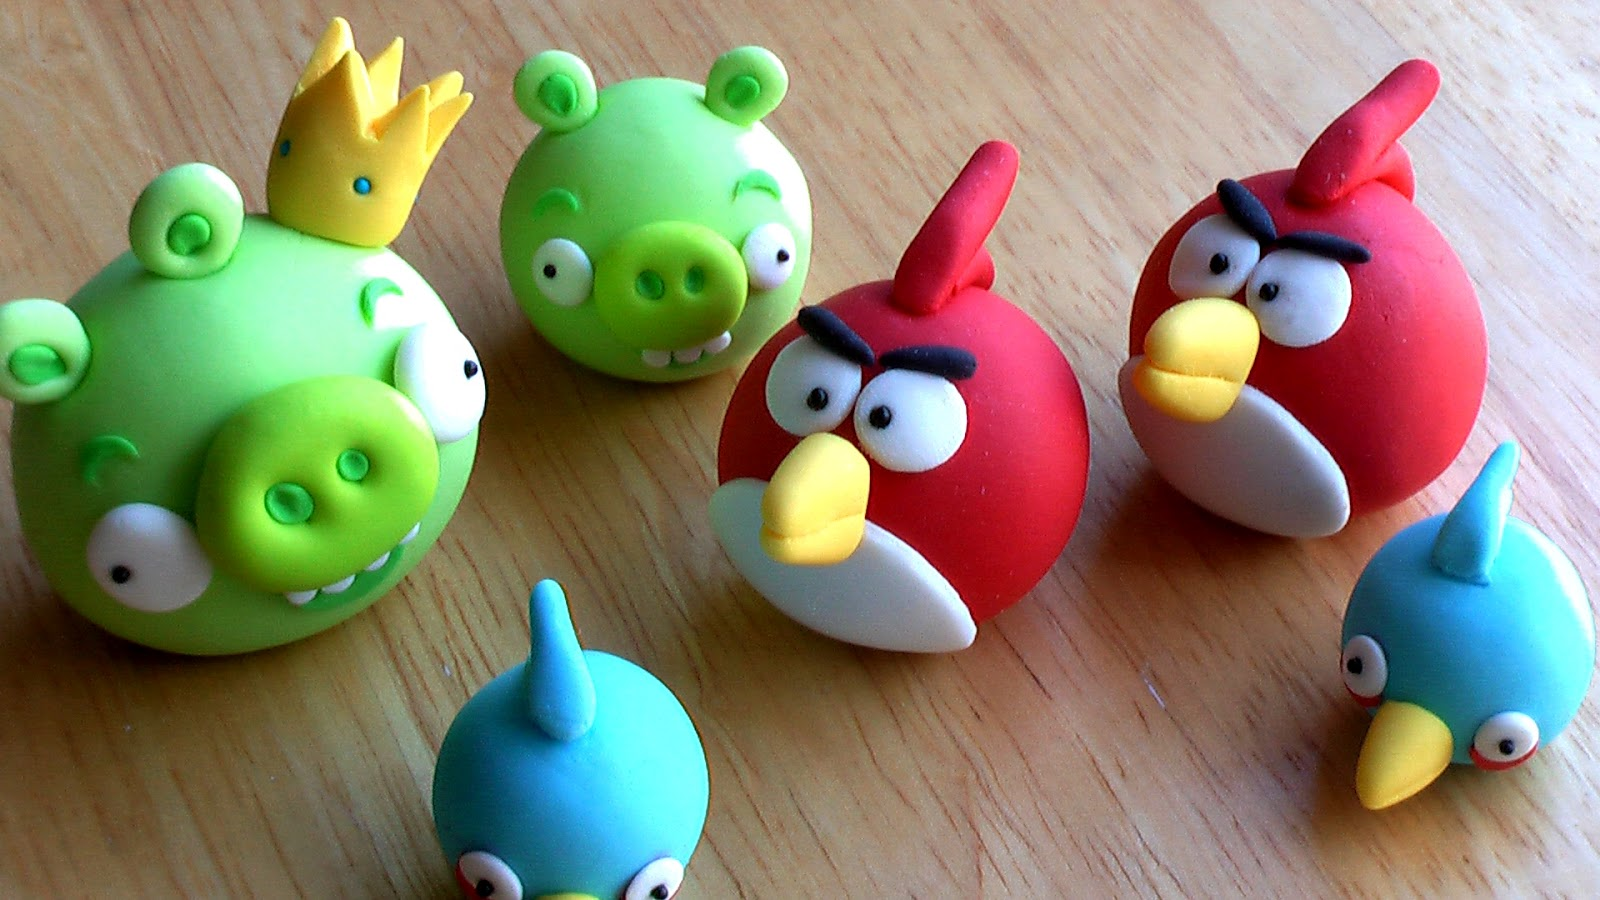 Sweet perfections cakes edible angry birds cake toppers for Angry birds cake decoration